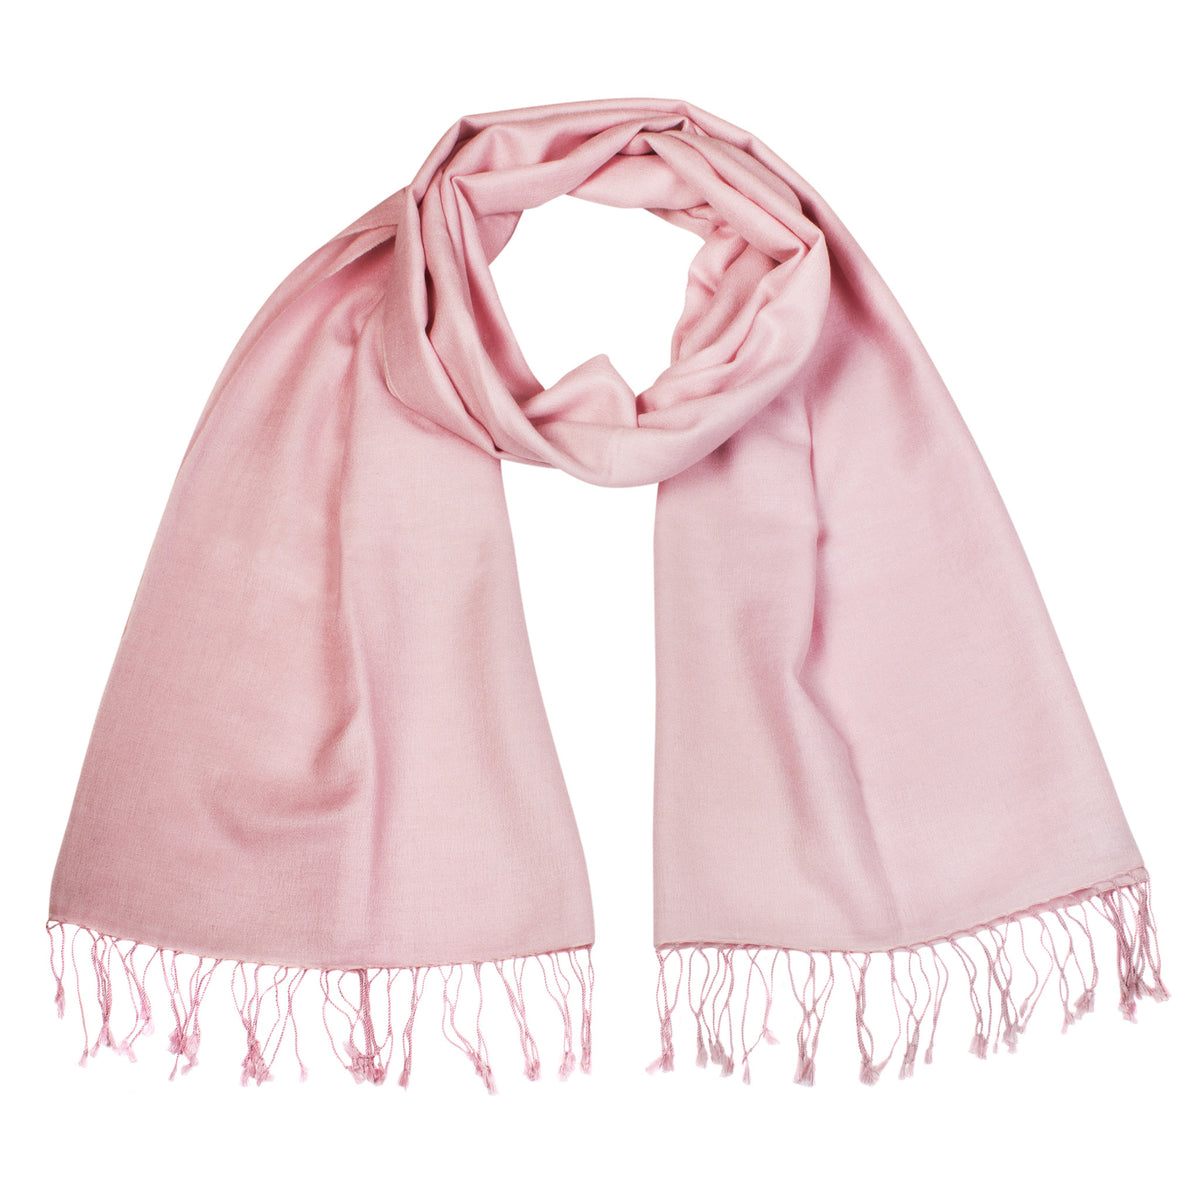 Soft Pink Pashsmina Stole | buy now at The Cashmere Choice London